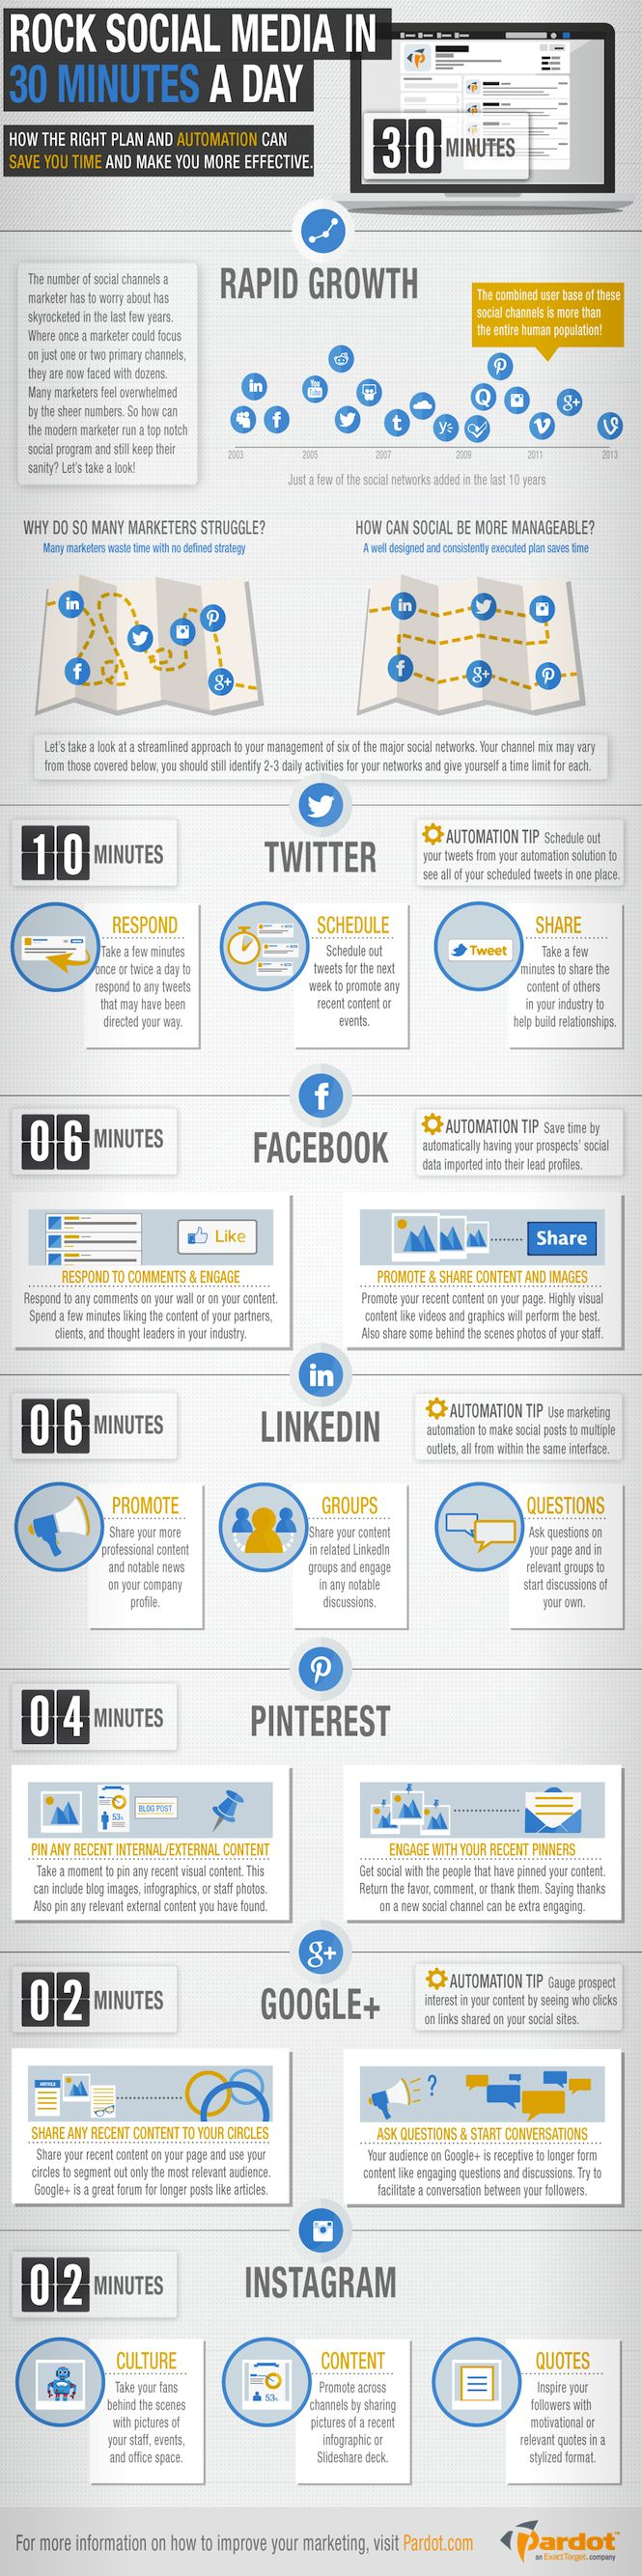 MyMarketing.Net - 30 Minutes for Social Strategy #infographic